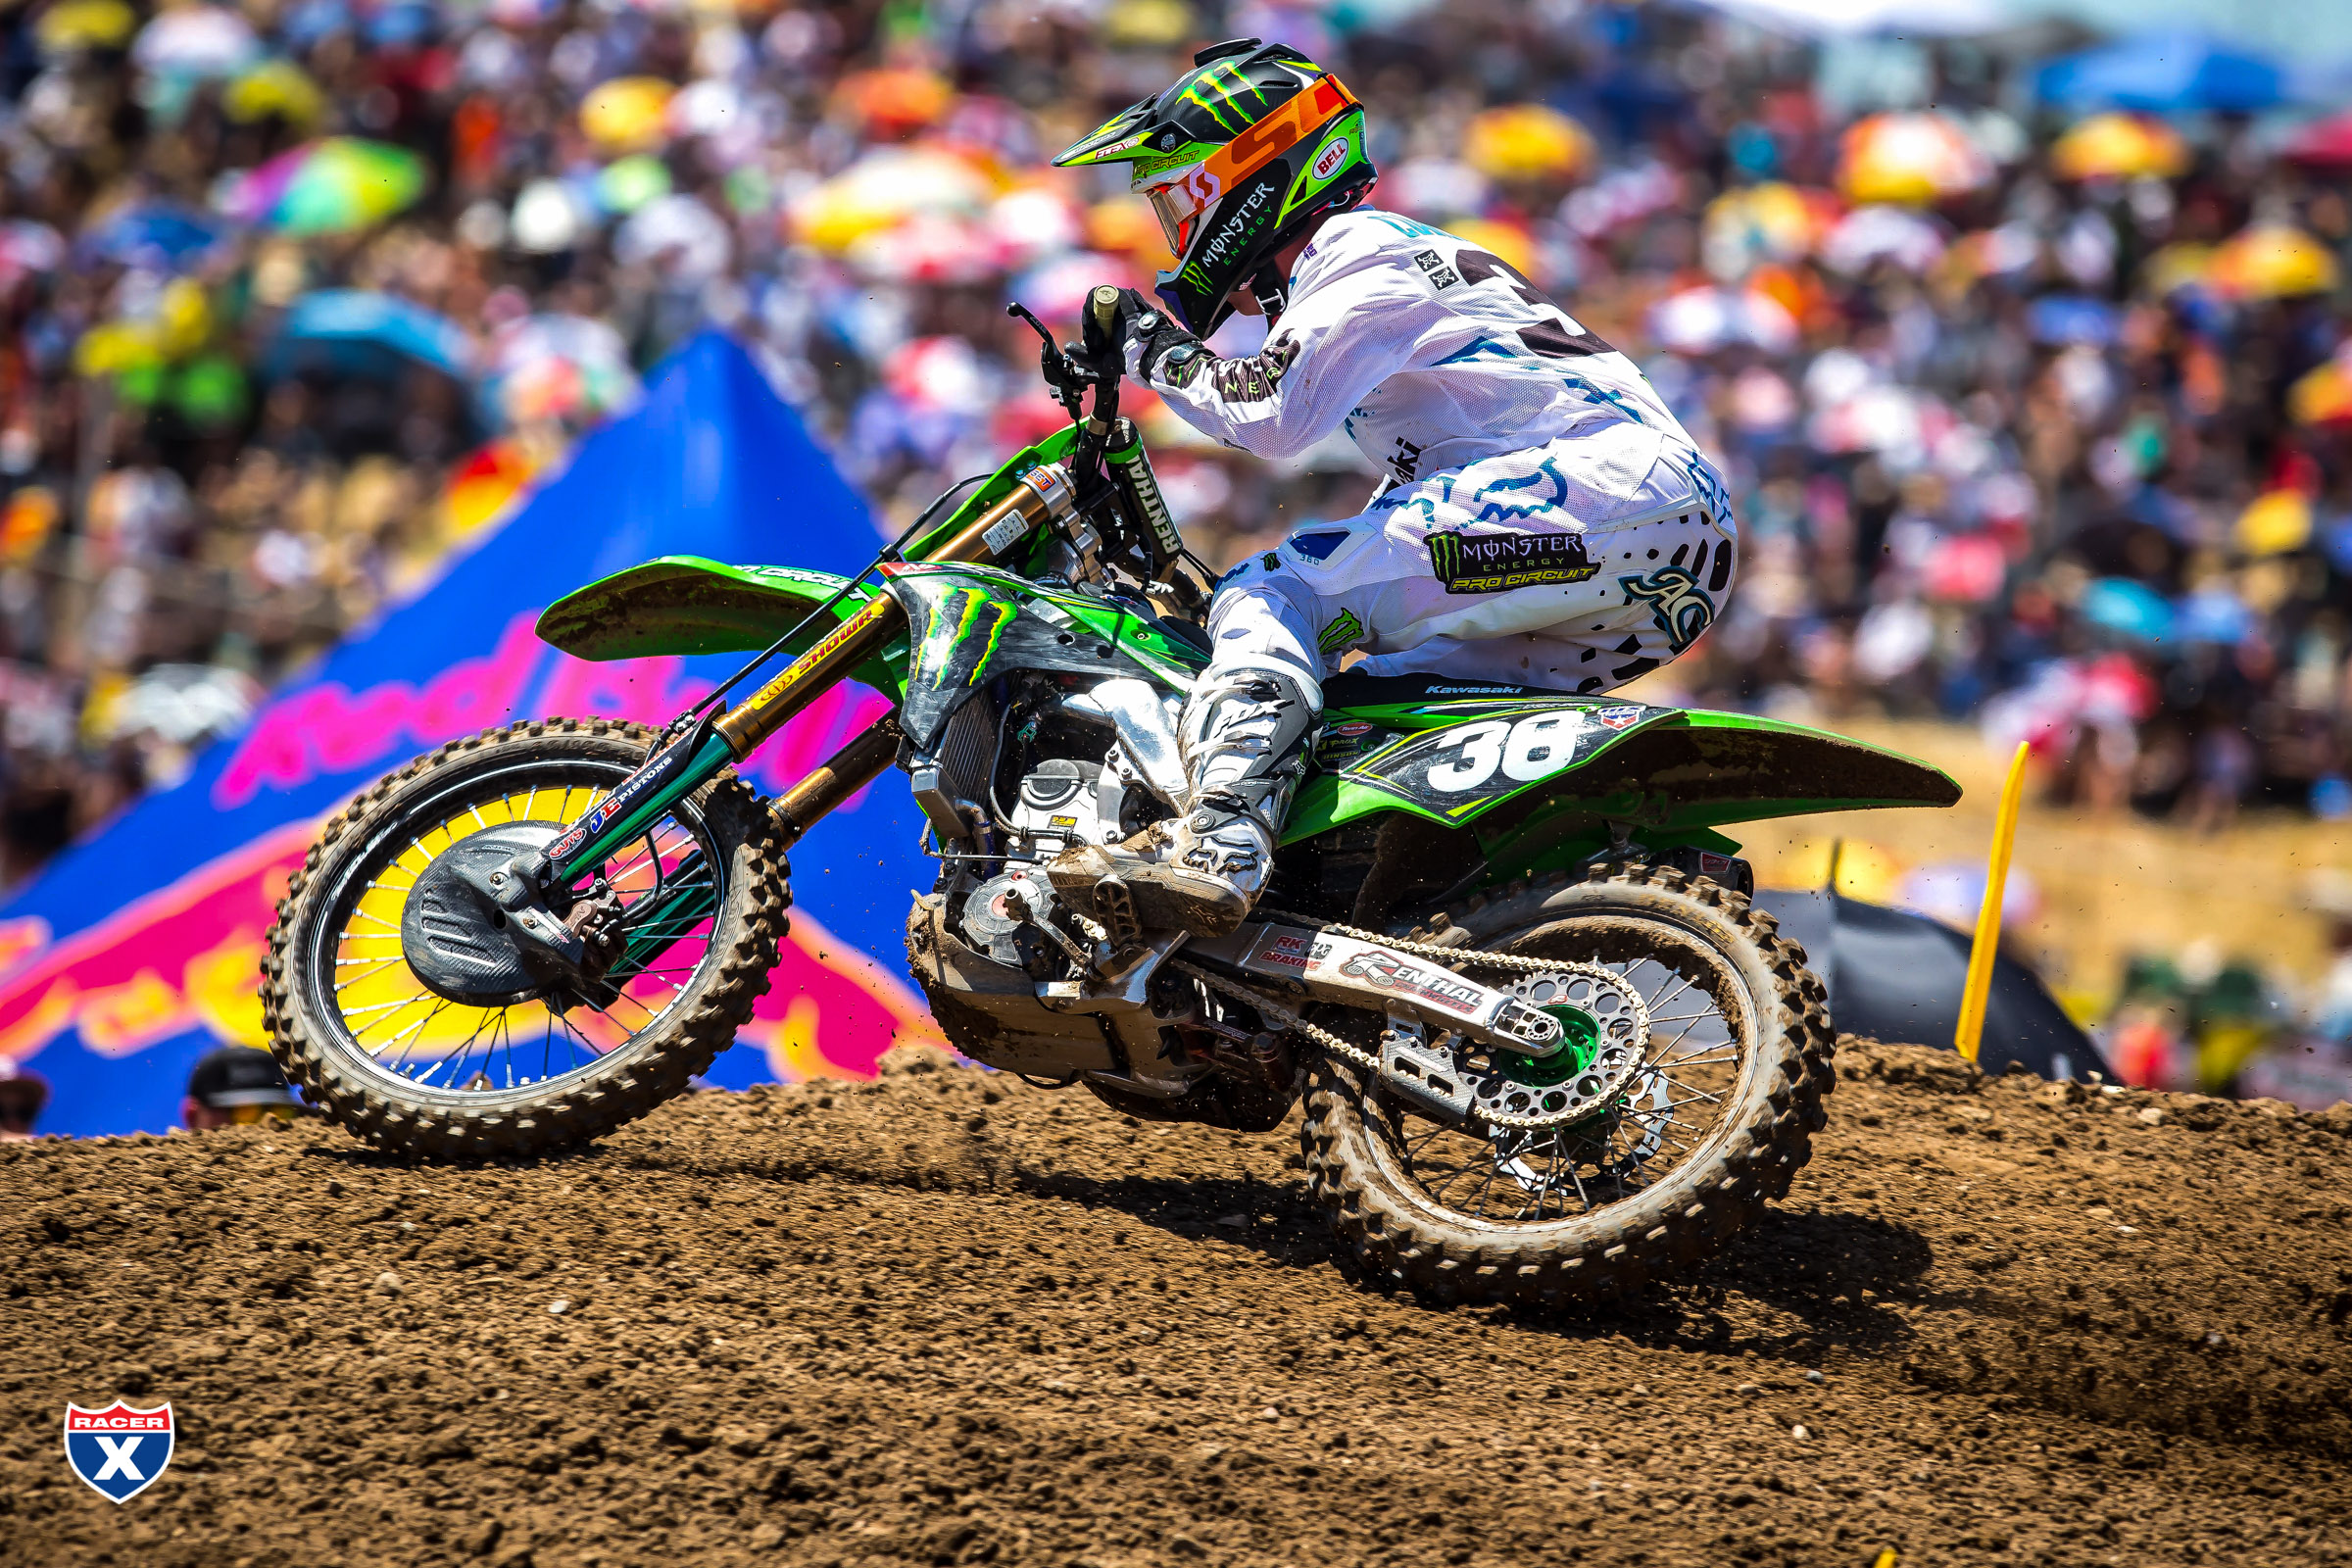 Cianciarulo_MX17_Htown_RS_0411